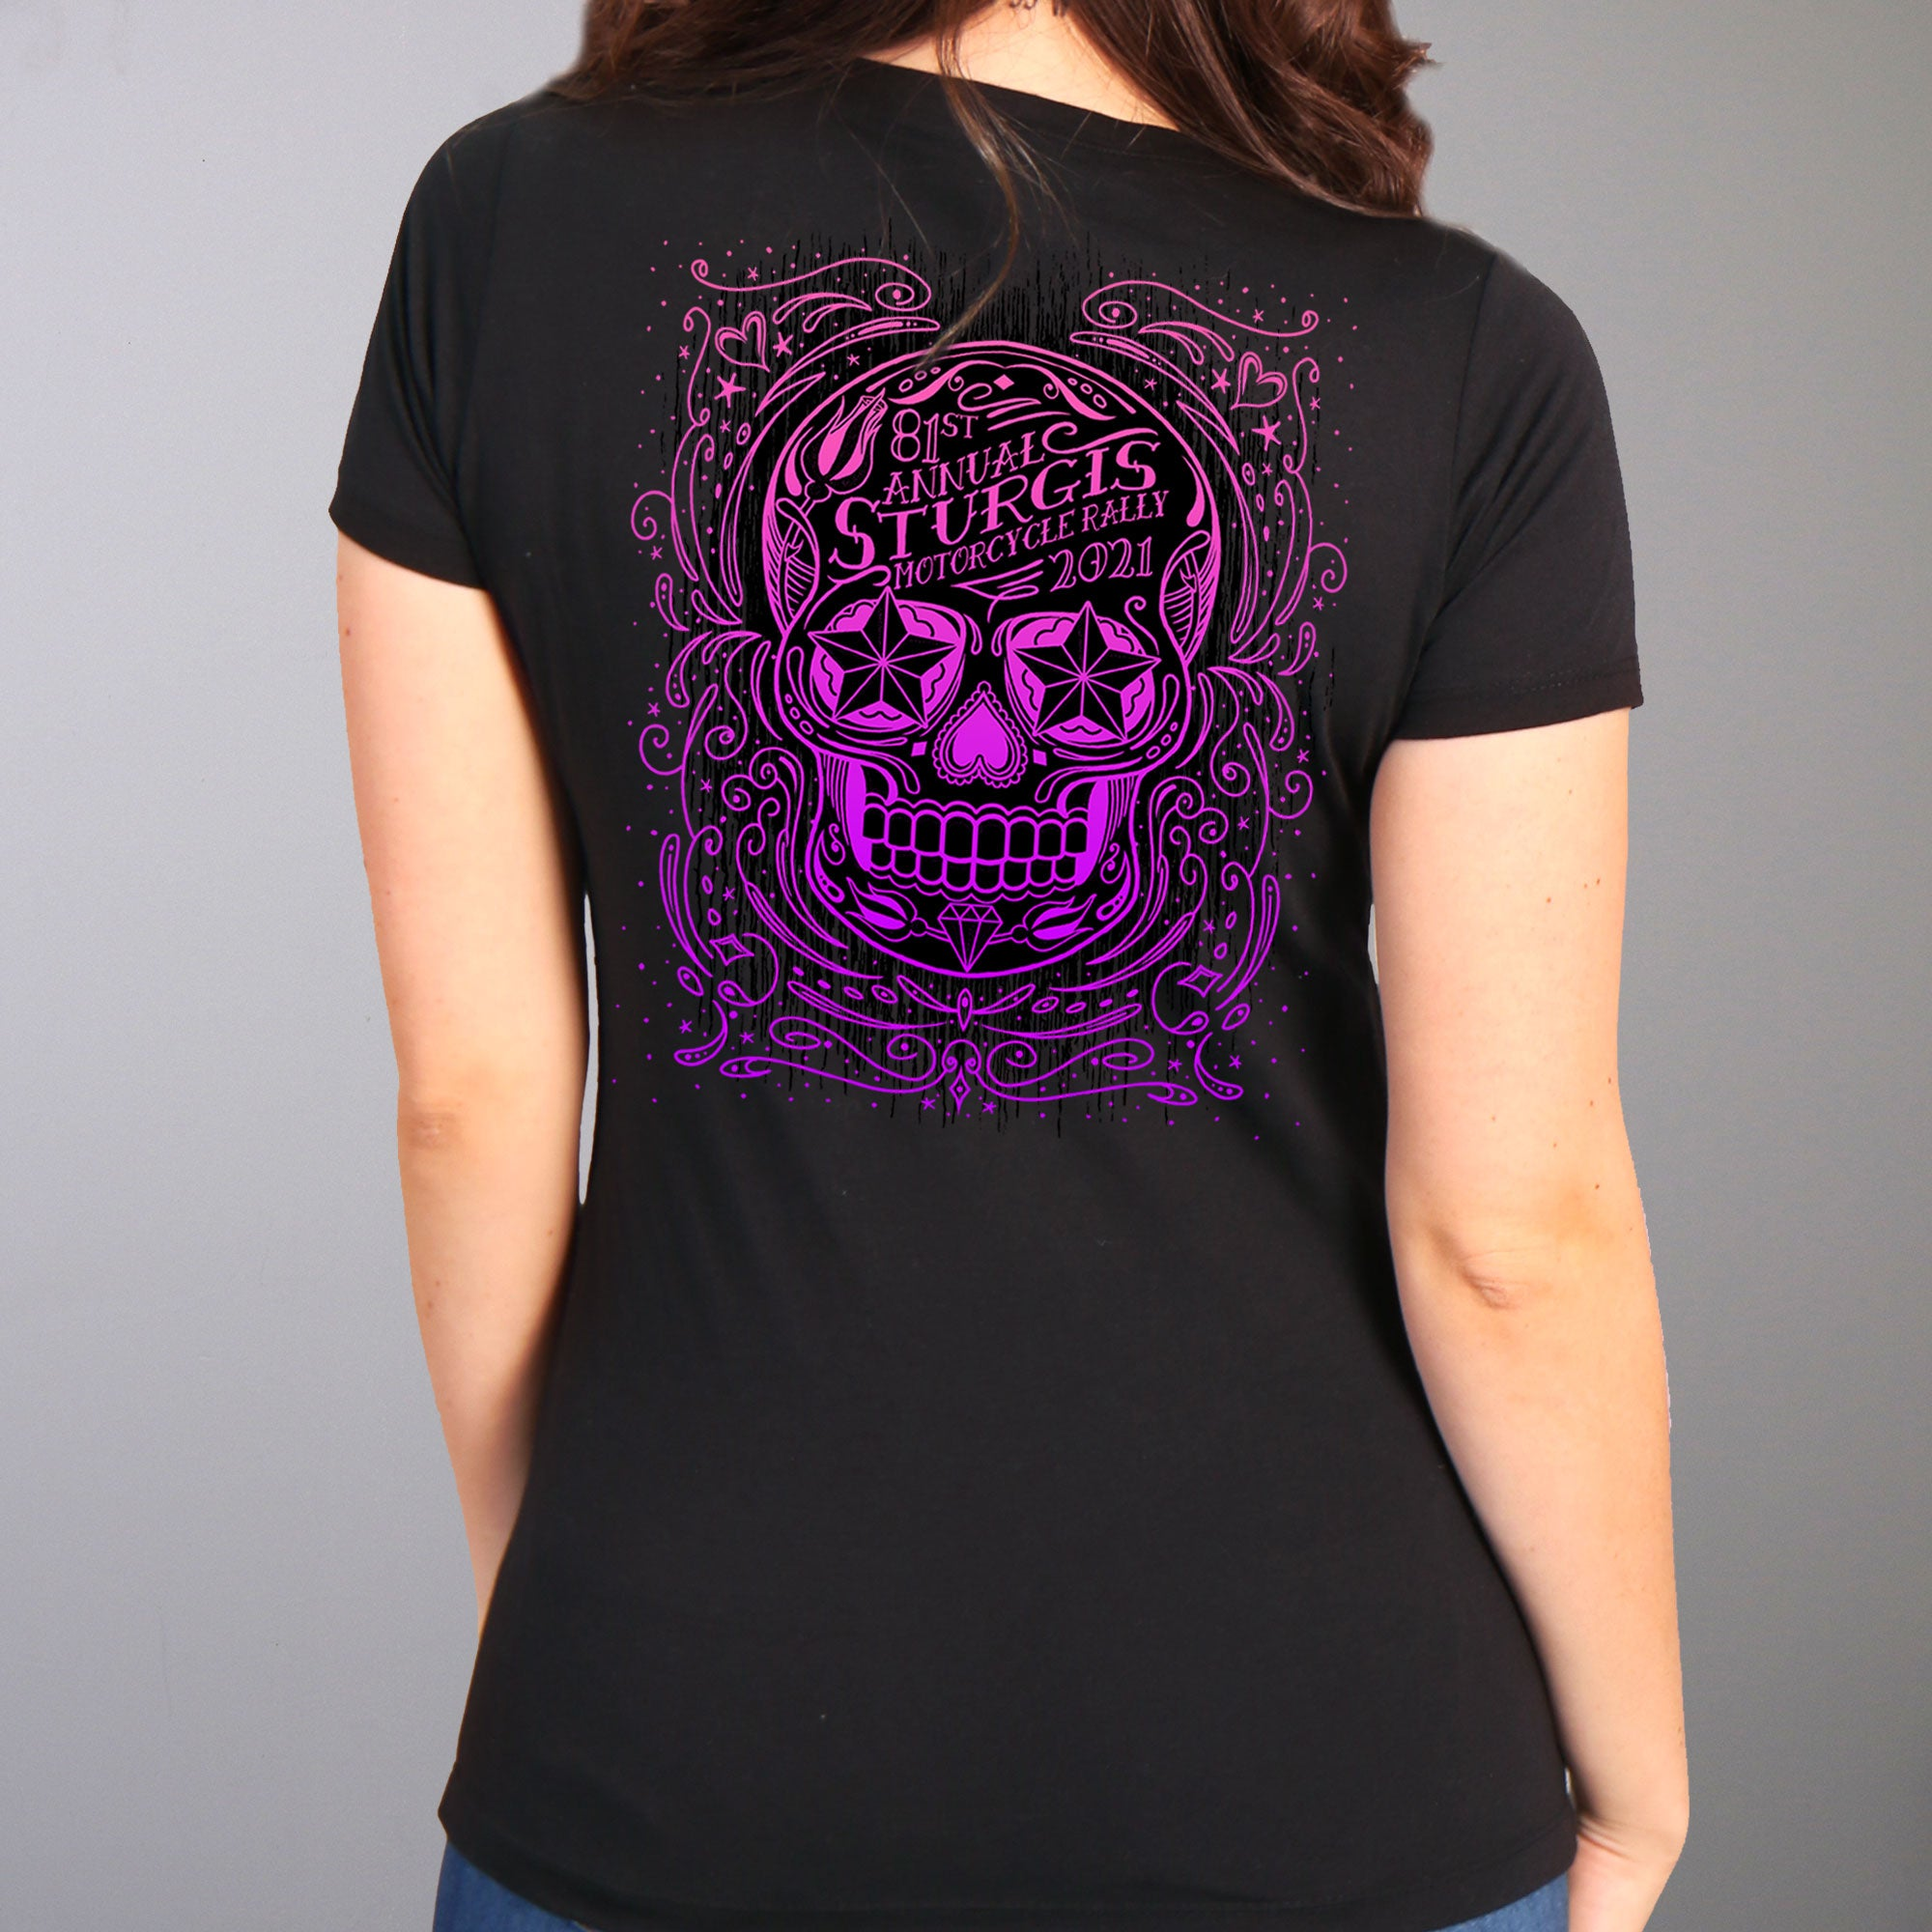 Sturgis 2021 Motorcycle Rally Sugar Skull T shirt